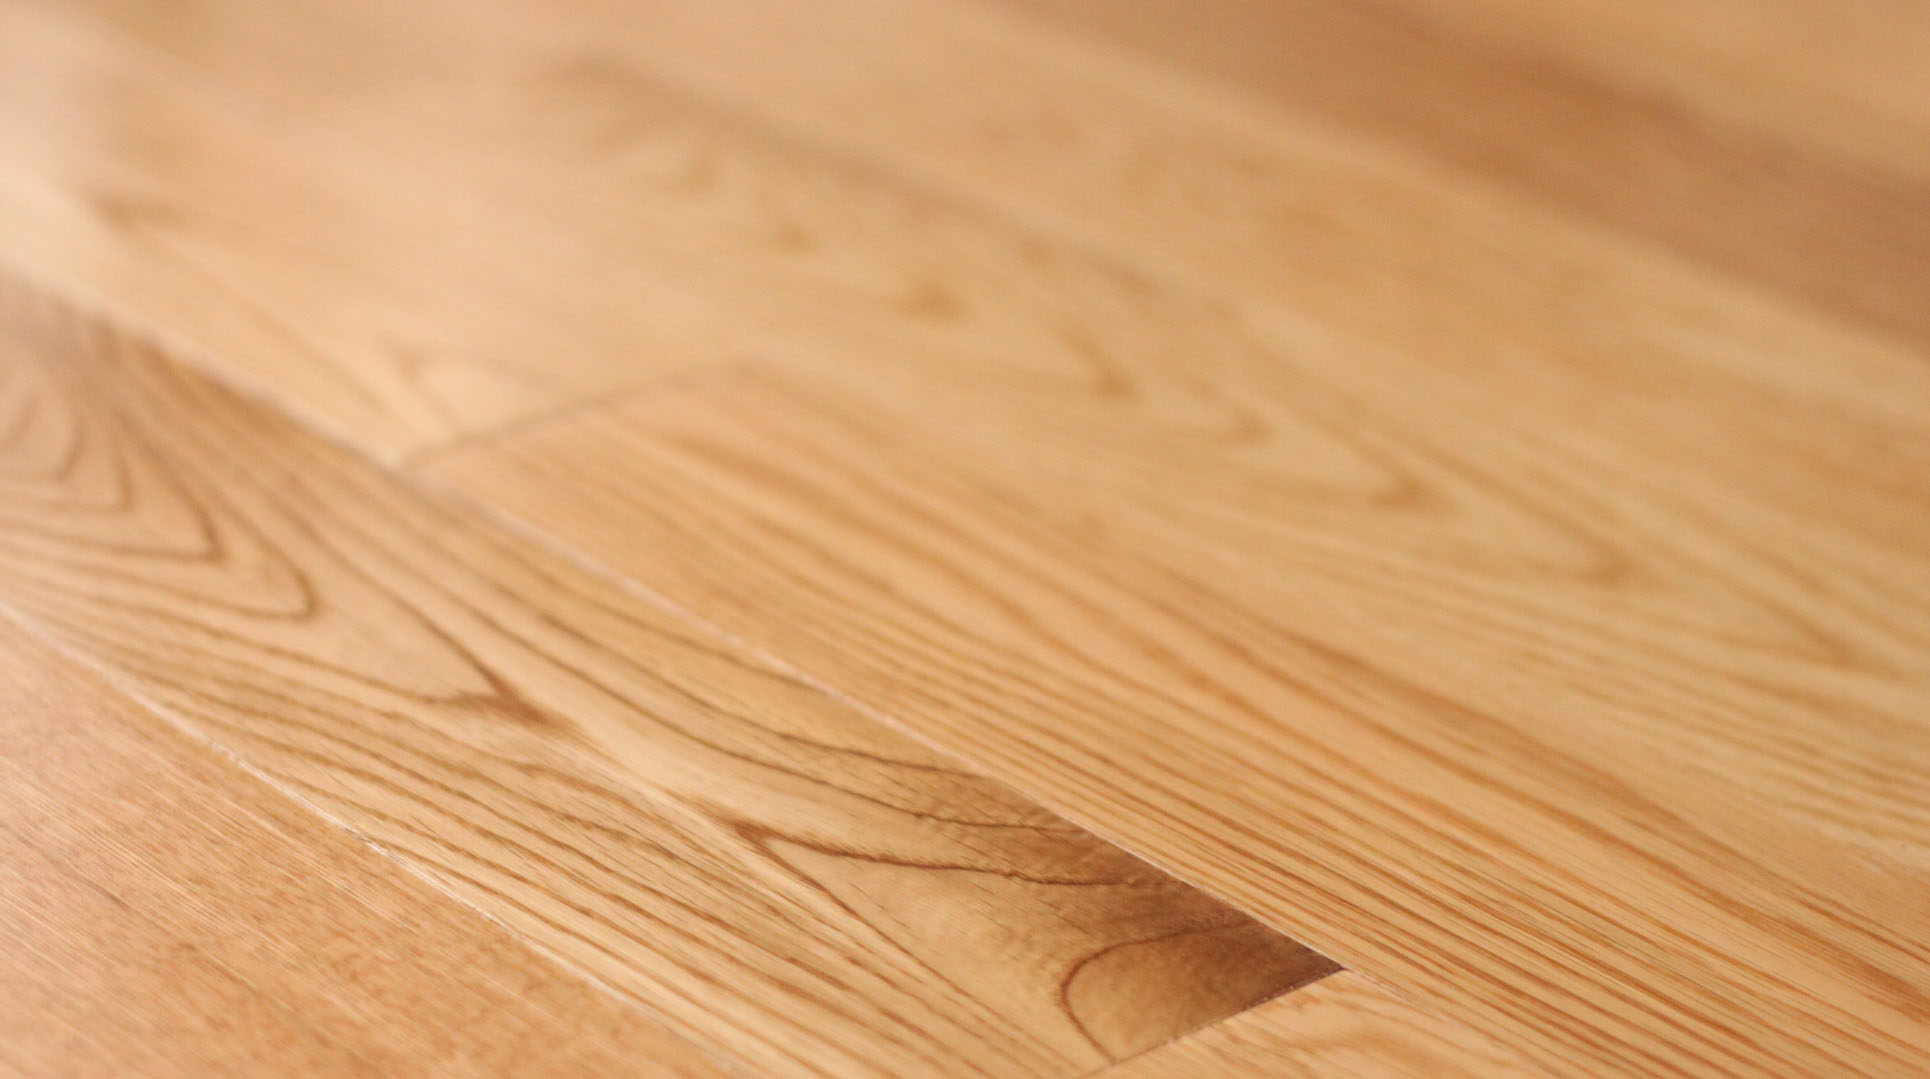 Engineered hardwood flooring in vancouver flooring company for Laminate flooring company